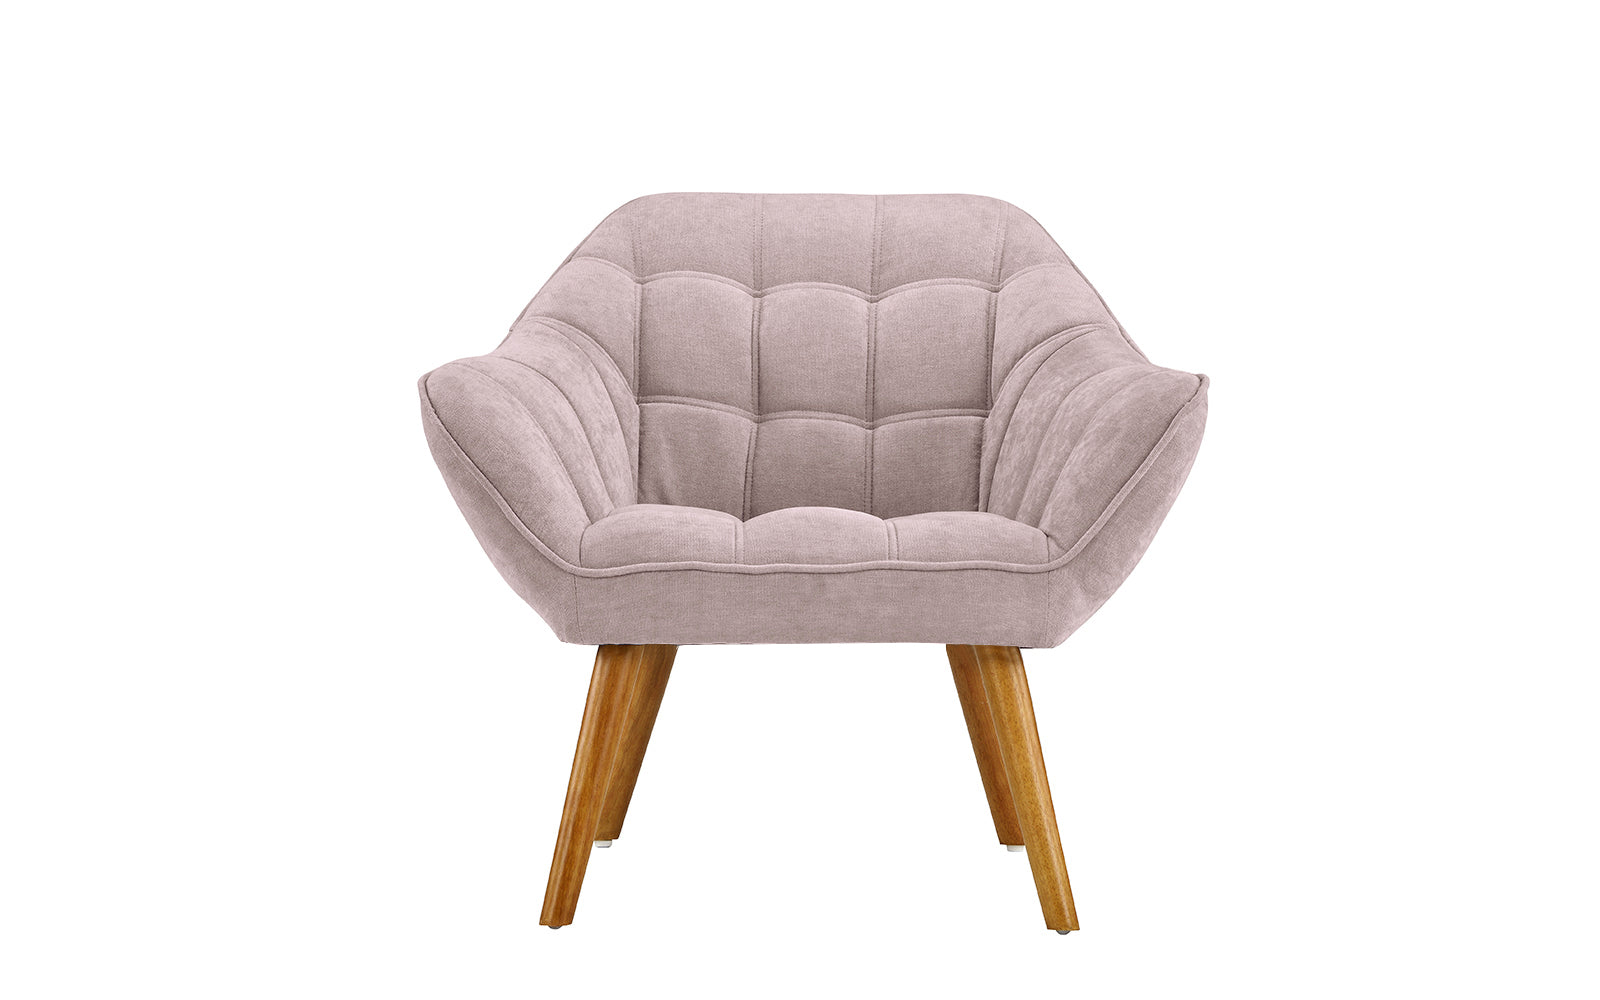 Linen Shell Accent Chair Image